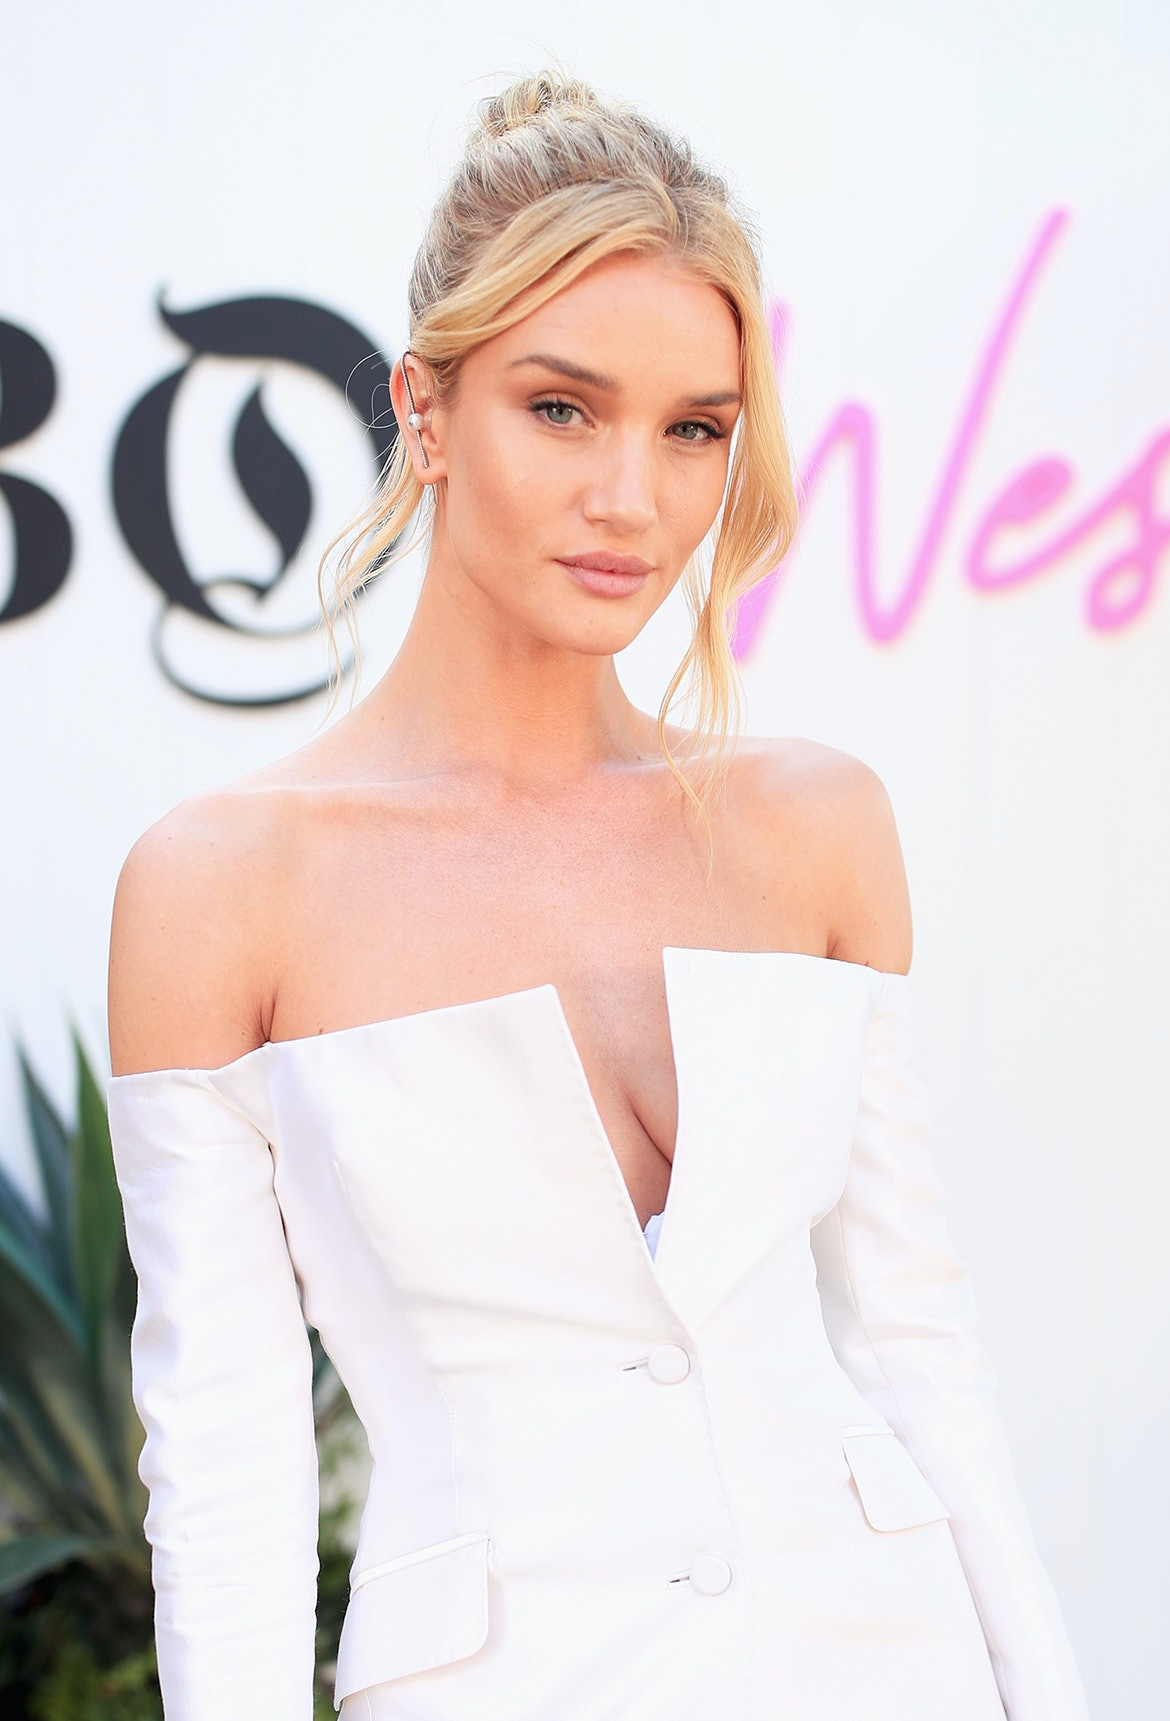 Hacked Rosie Huntington-Whiteley nude (54 foto and video), Ass, Sideboobs, Boobs, lingerie 2018